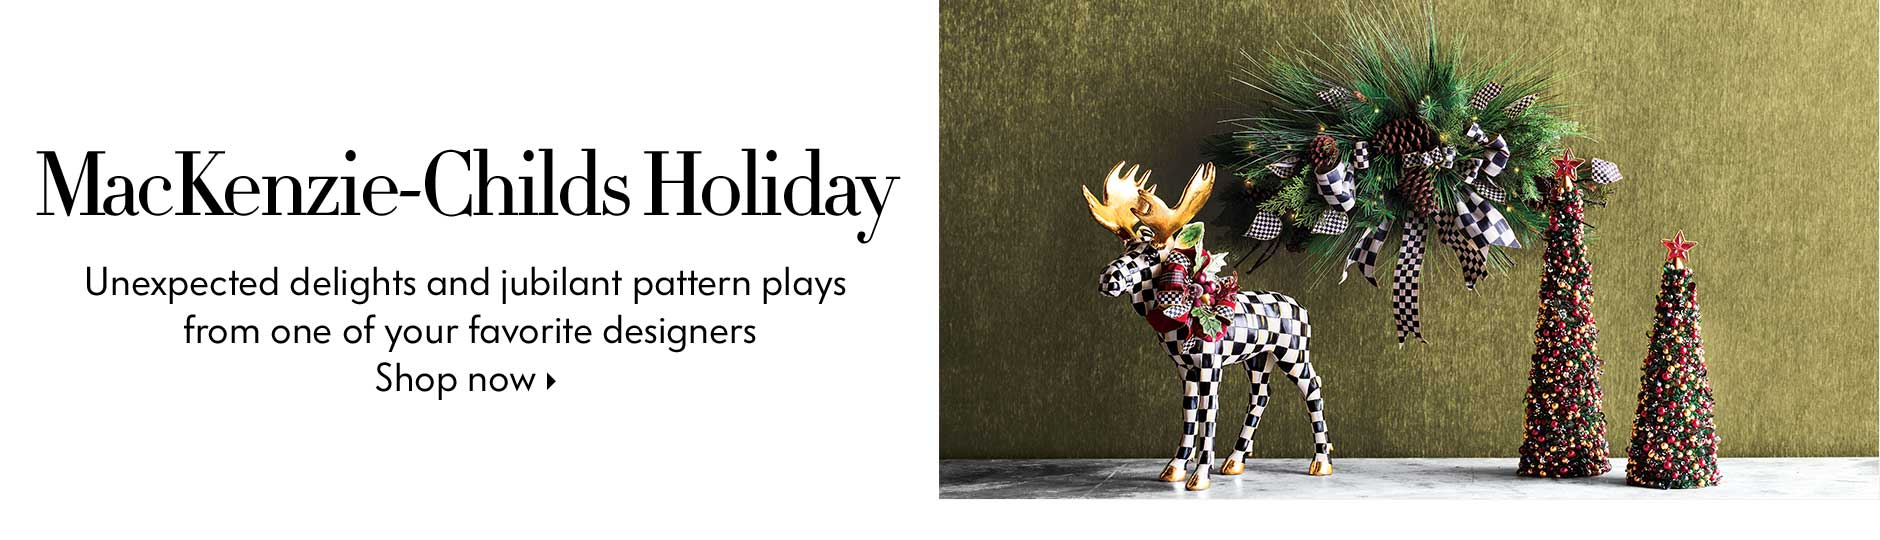 MacKenzie-Childs Holiday - Unexpected delights and jubilant pattern plays from one of your favorite designers